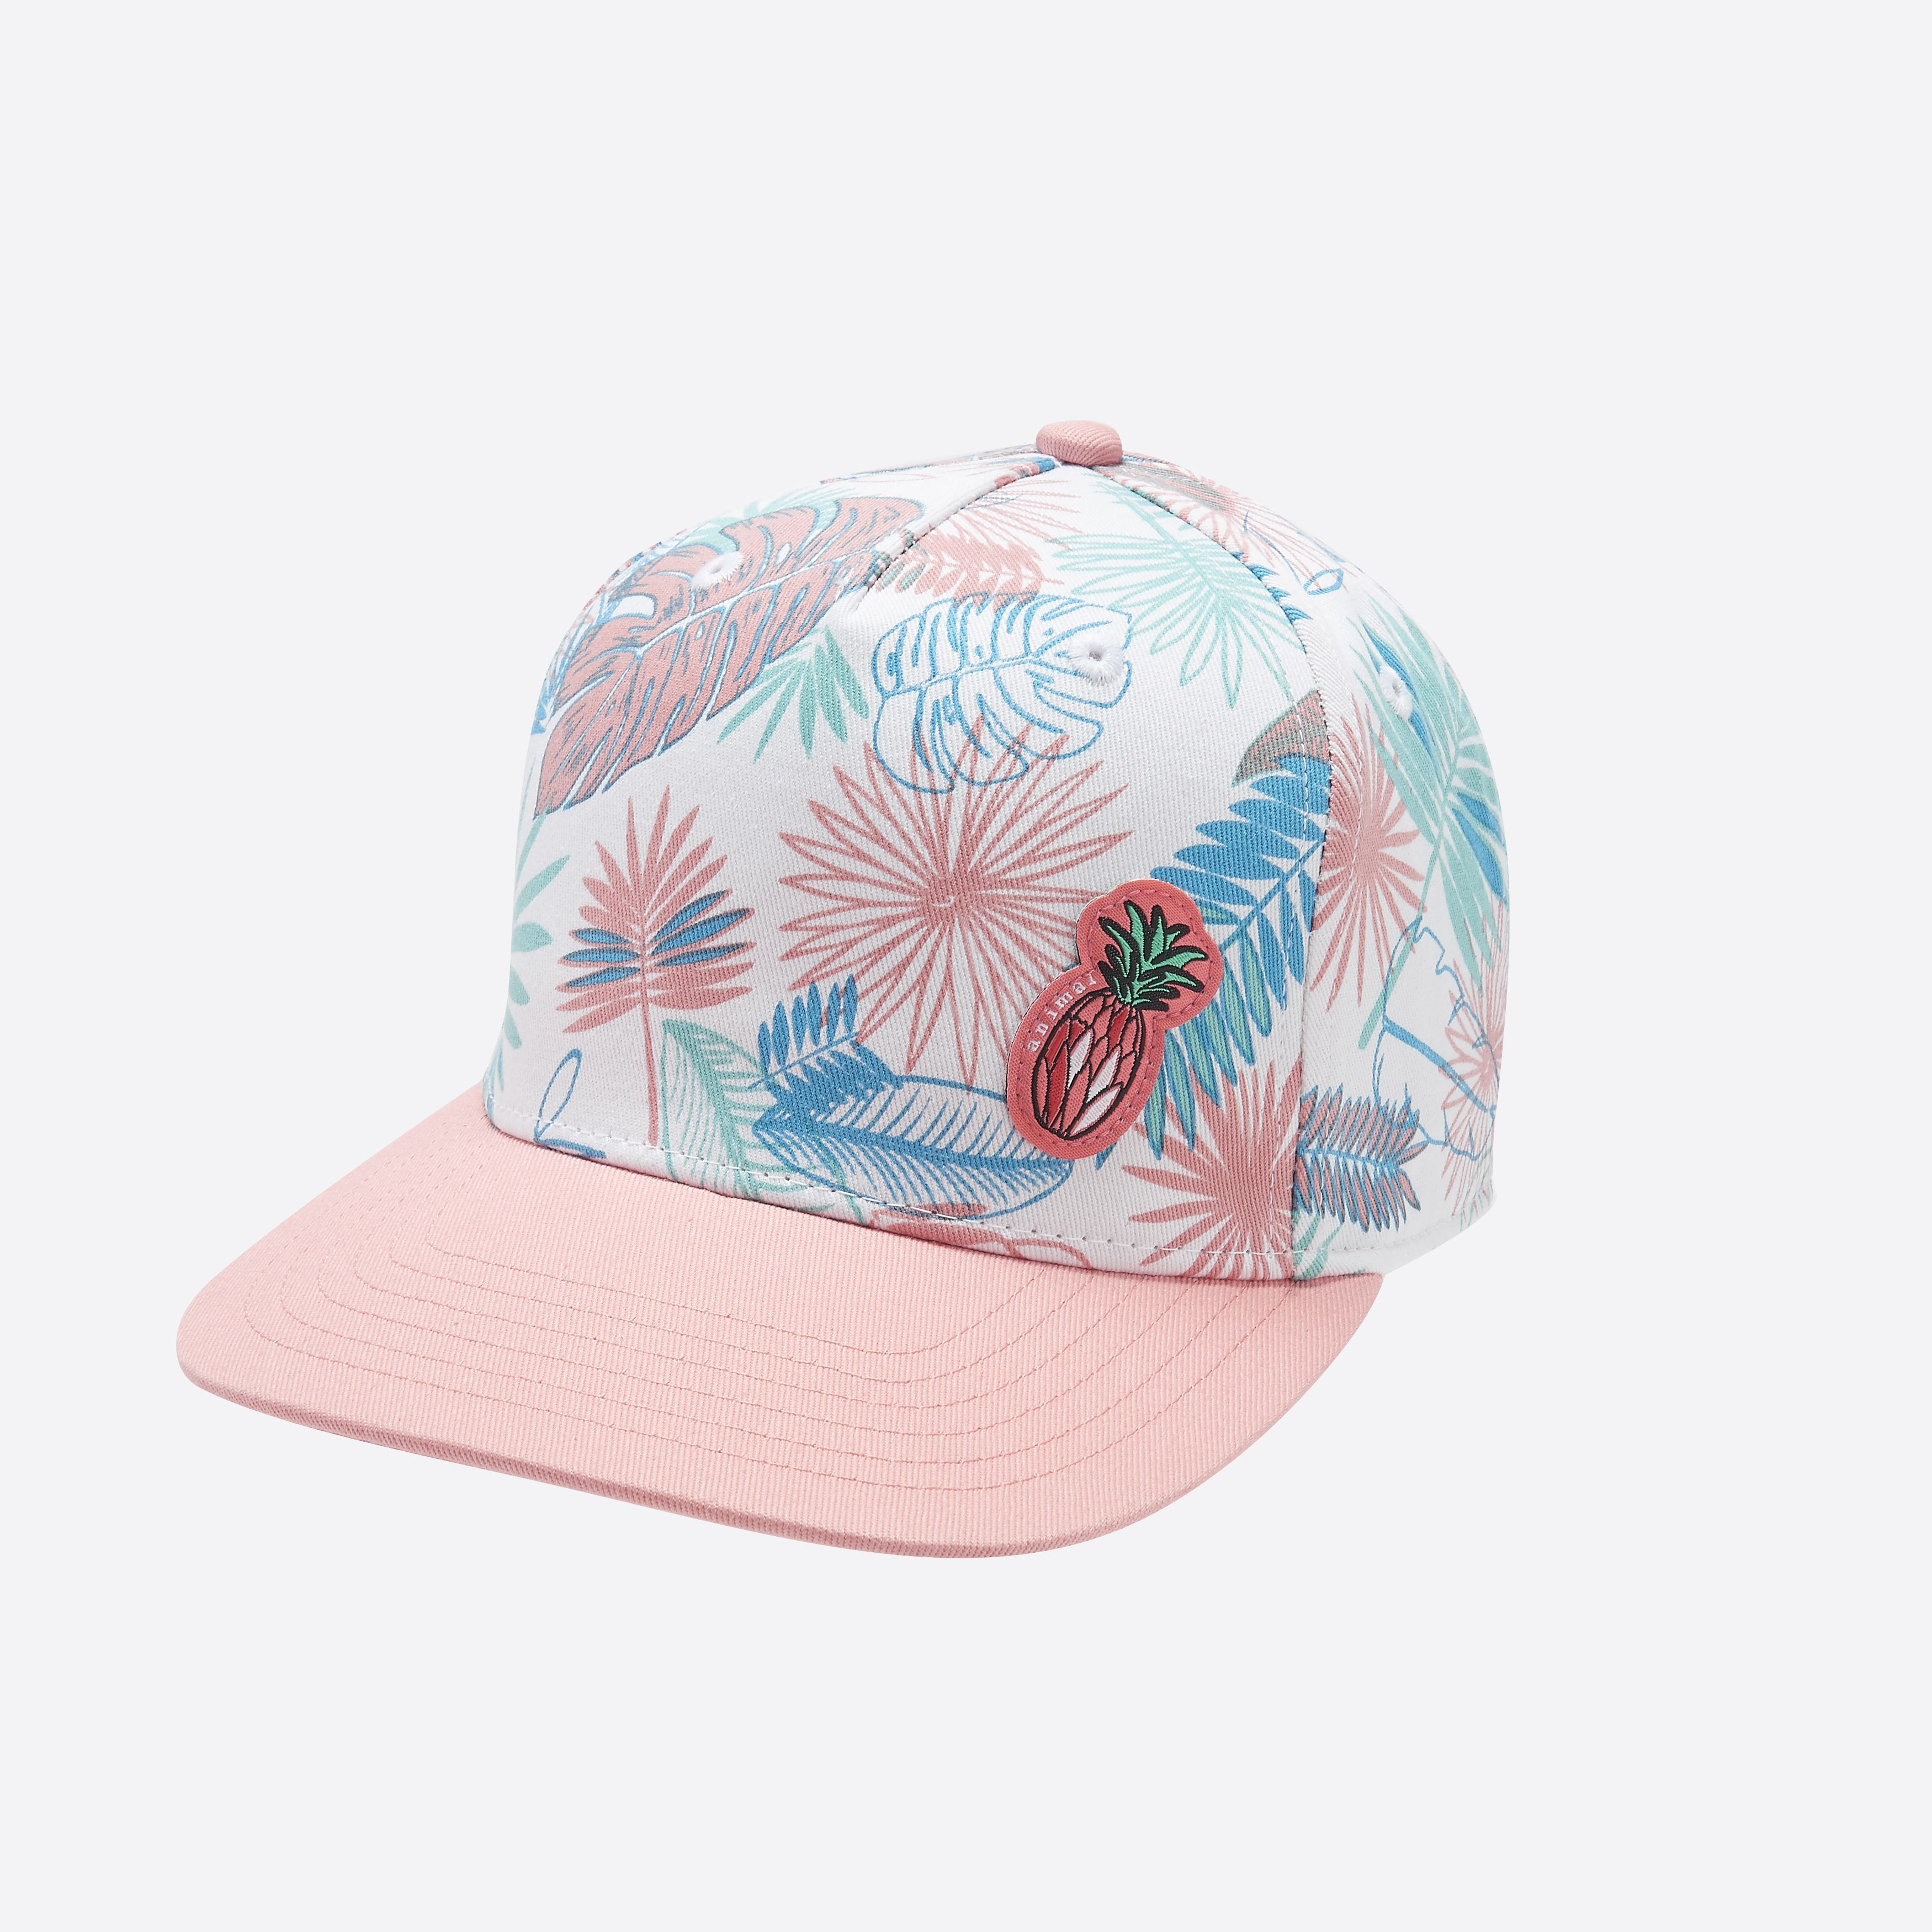 Casquette Enfant ANIMAL Daylight Flat Peak Pink